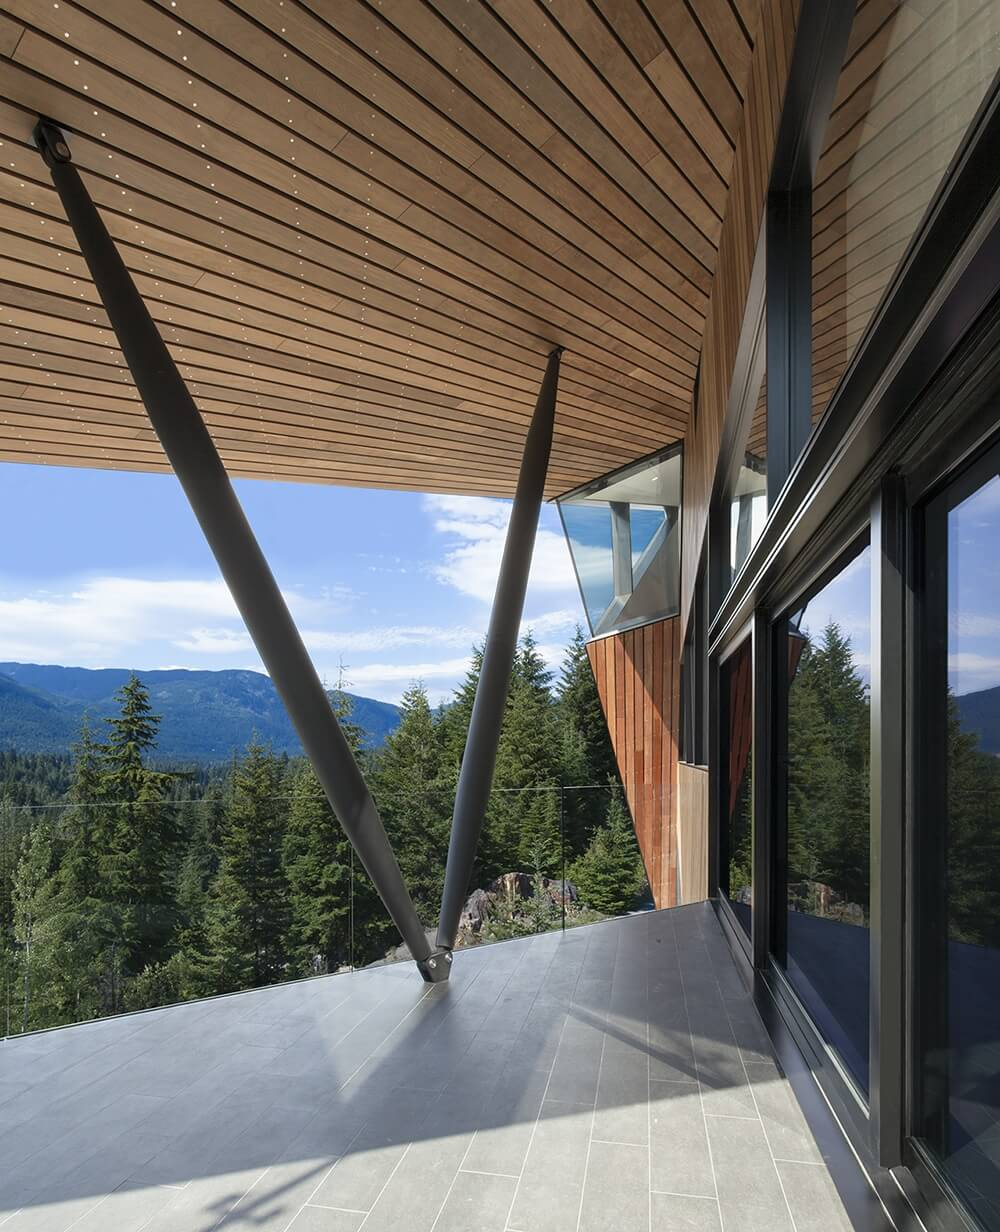 From out on the deck, we can see the two support beams in a V, which don't obstruct the gorgeous view.